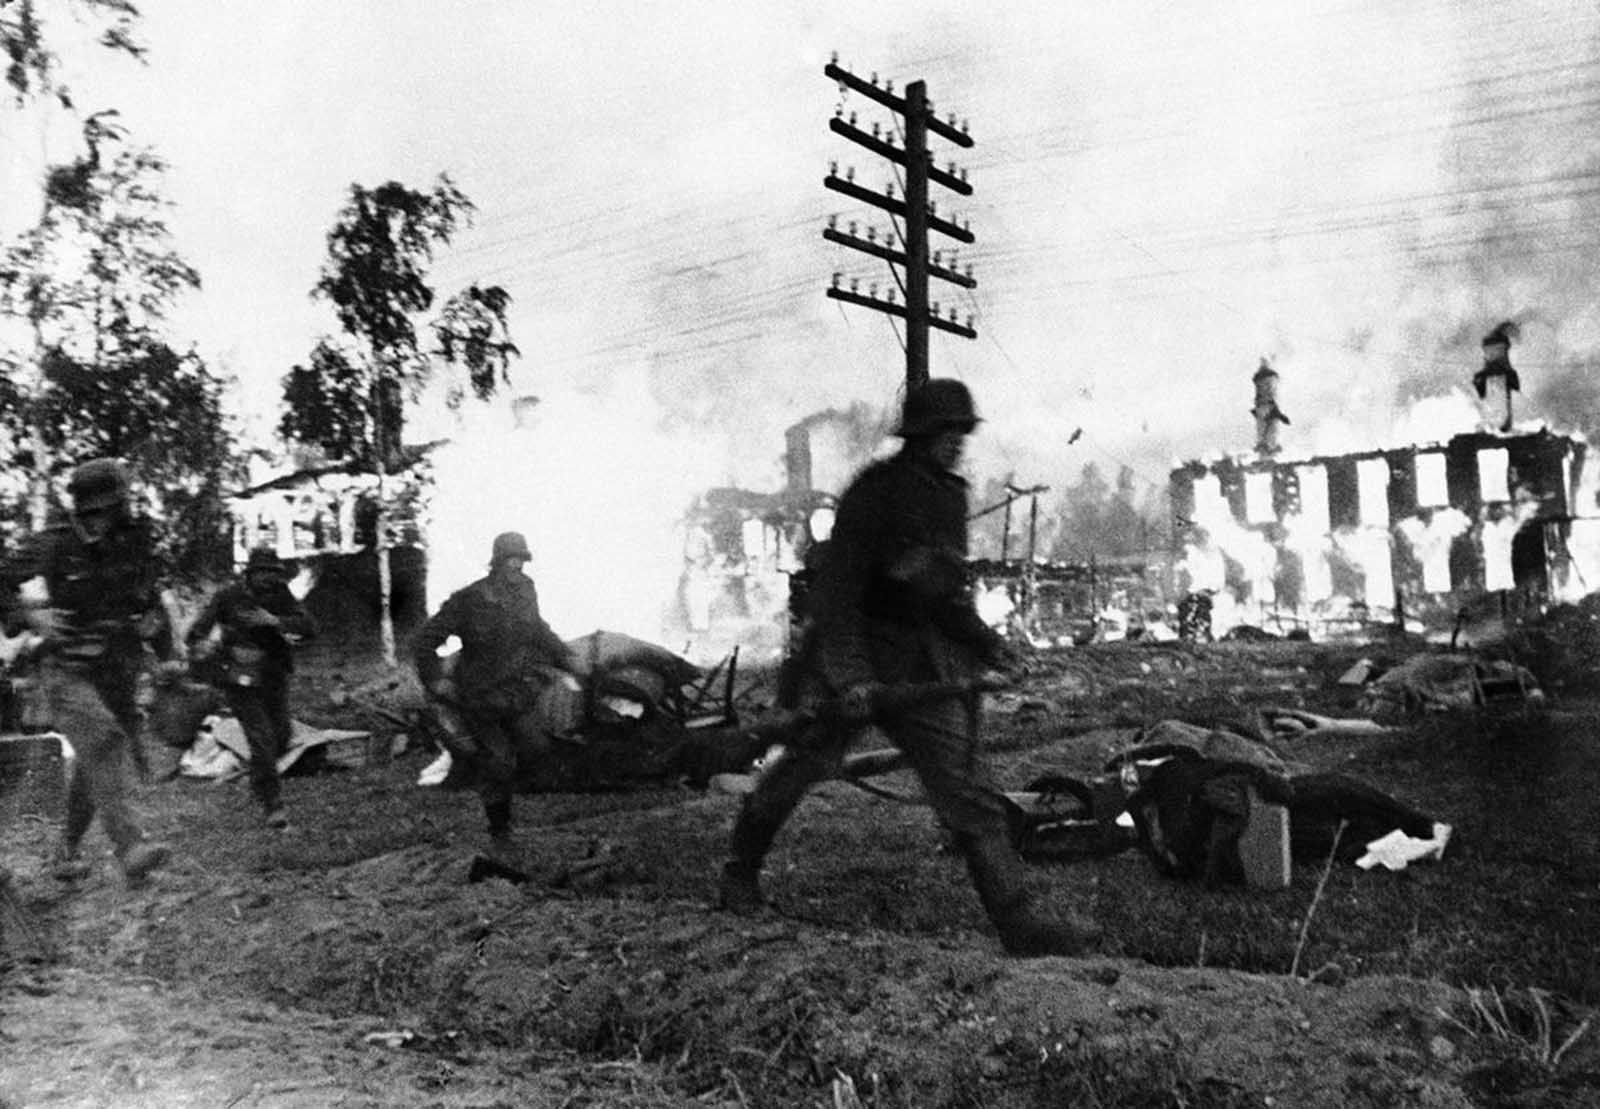 German troops make a hasty advance through a blazing Leningrad suburb, in Russia on November 24, 1941.